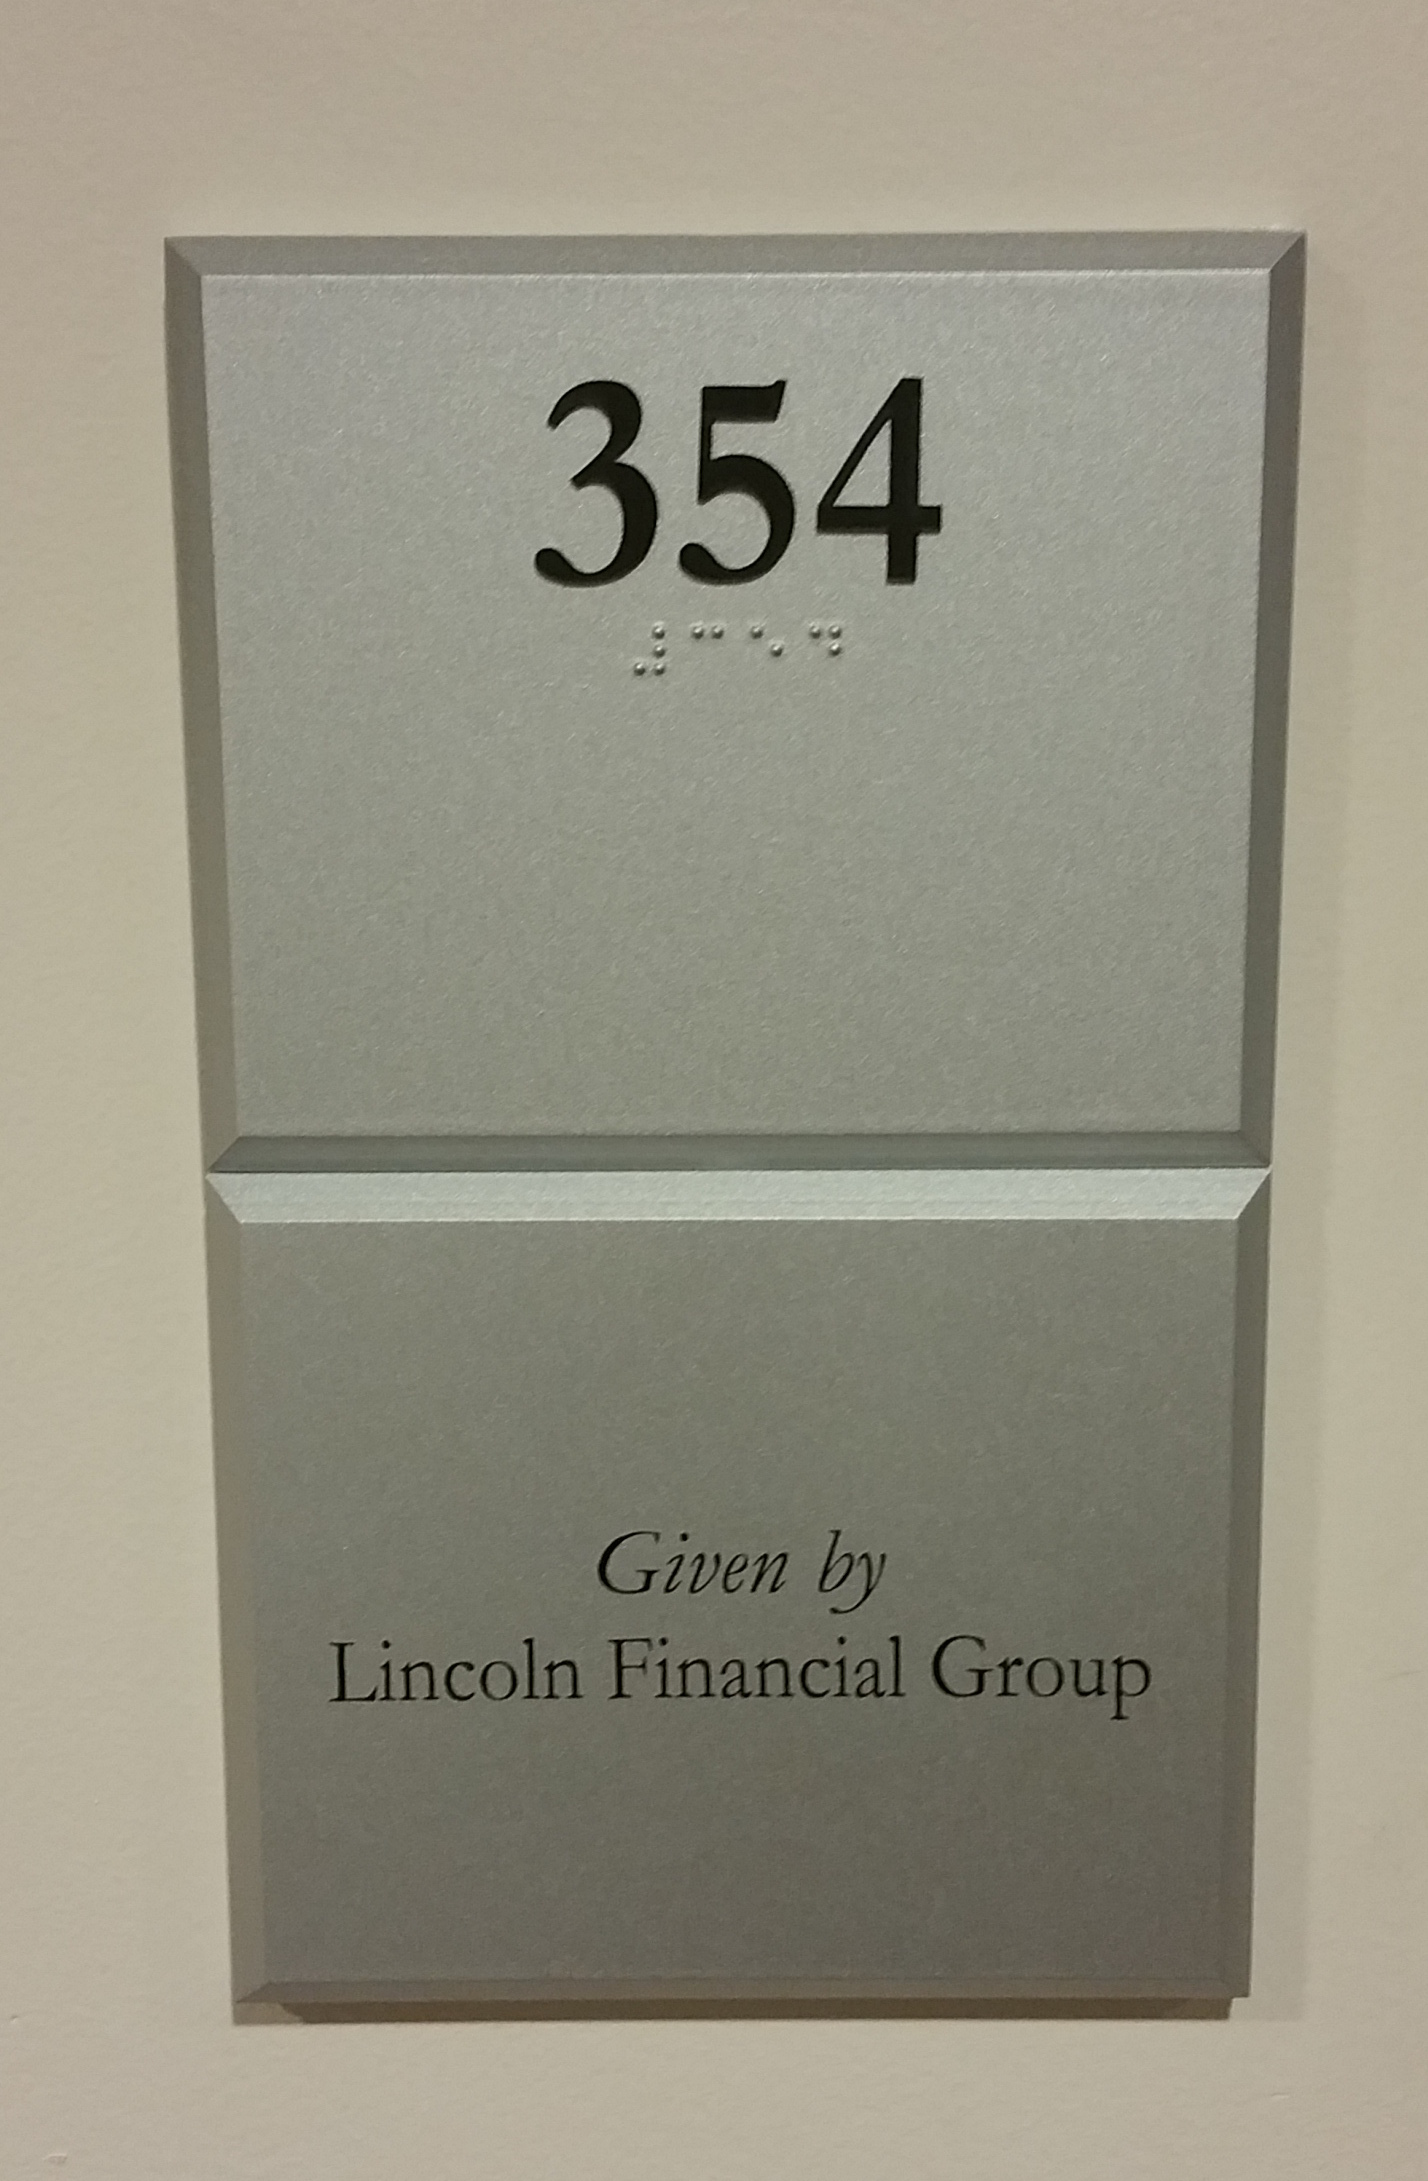 Photo of Koury Business Center 354 room number with dedication plaque installed below